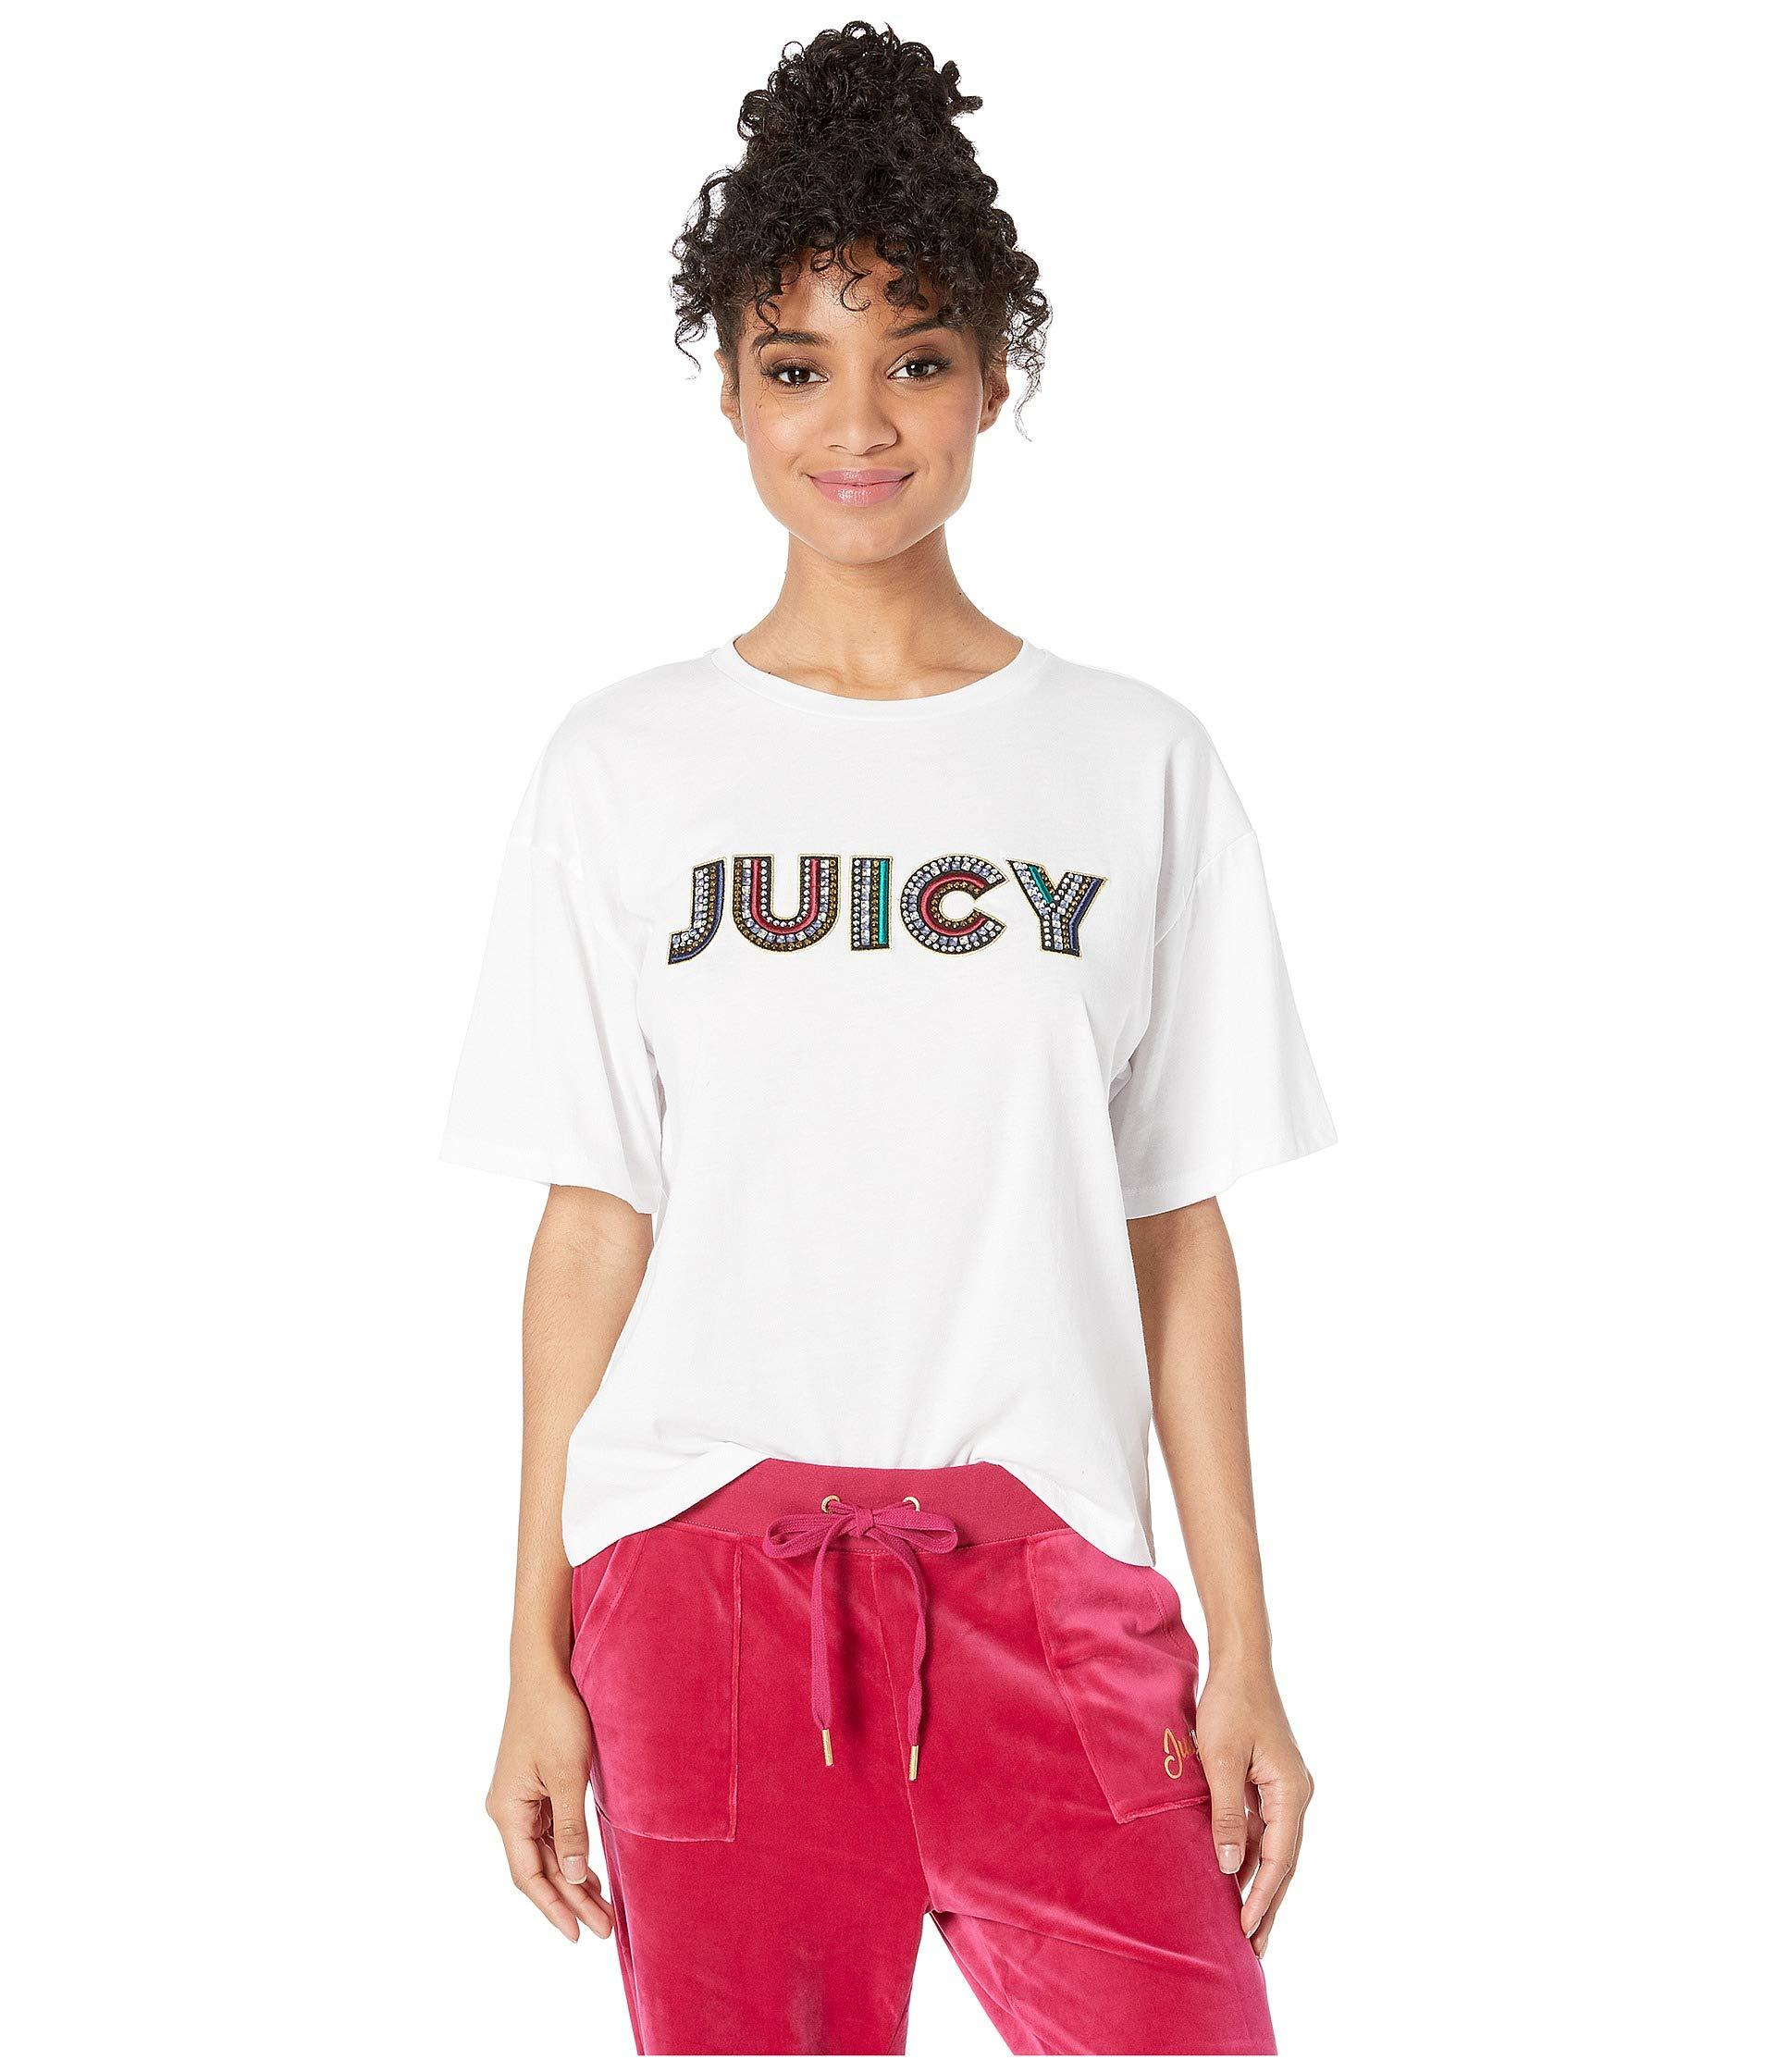 da34fde2 Lyst - Juicy Couture Luxe Juicy Tee in White